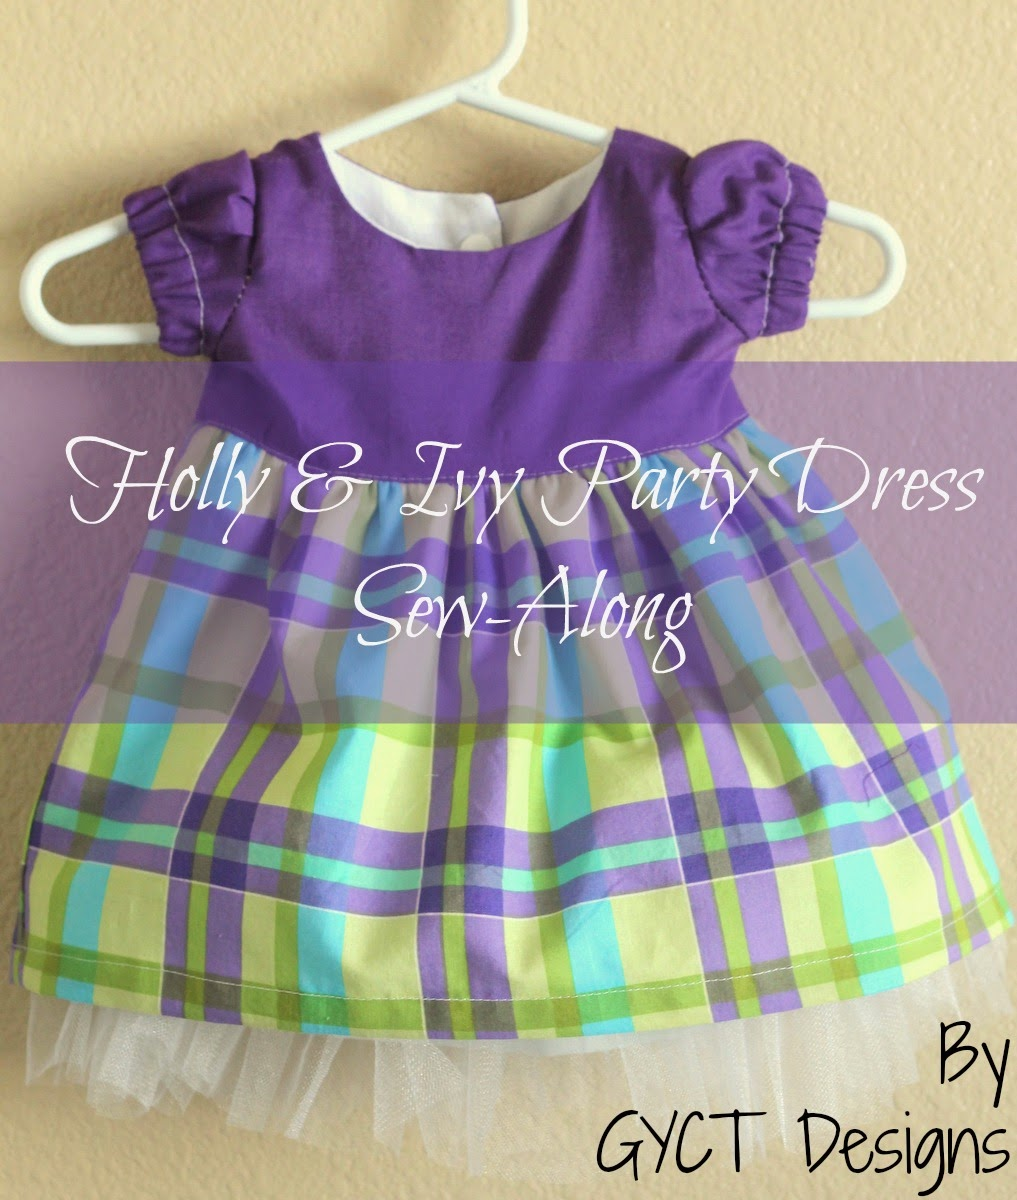 Holly & Ivy Party Dress Sew-Along - Day 2